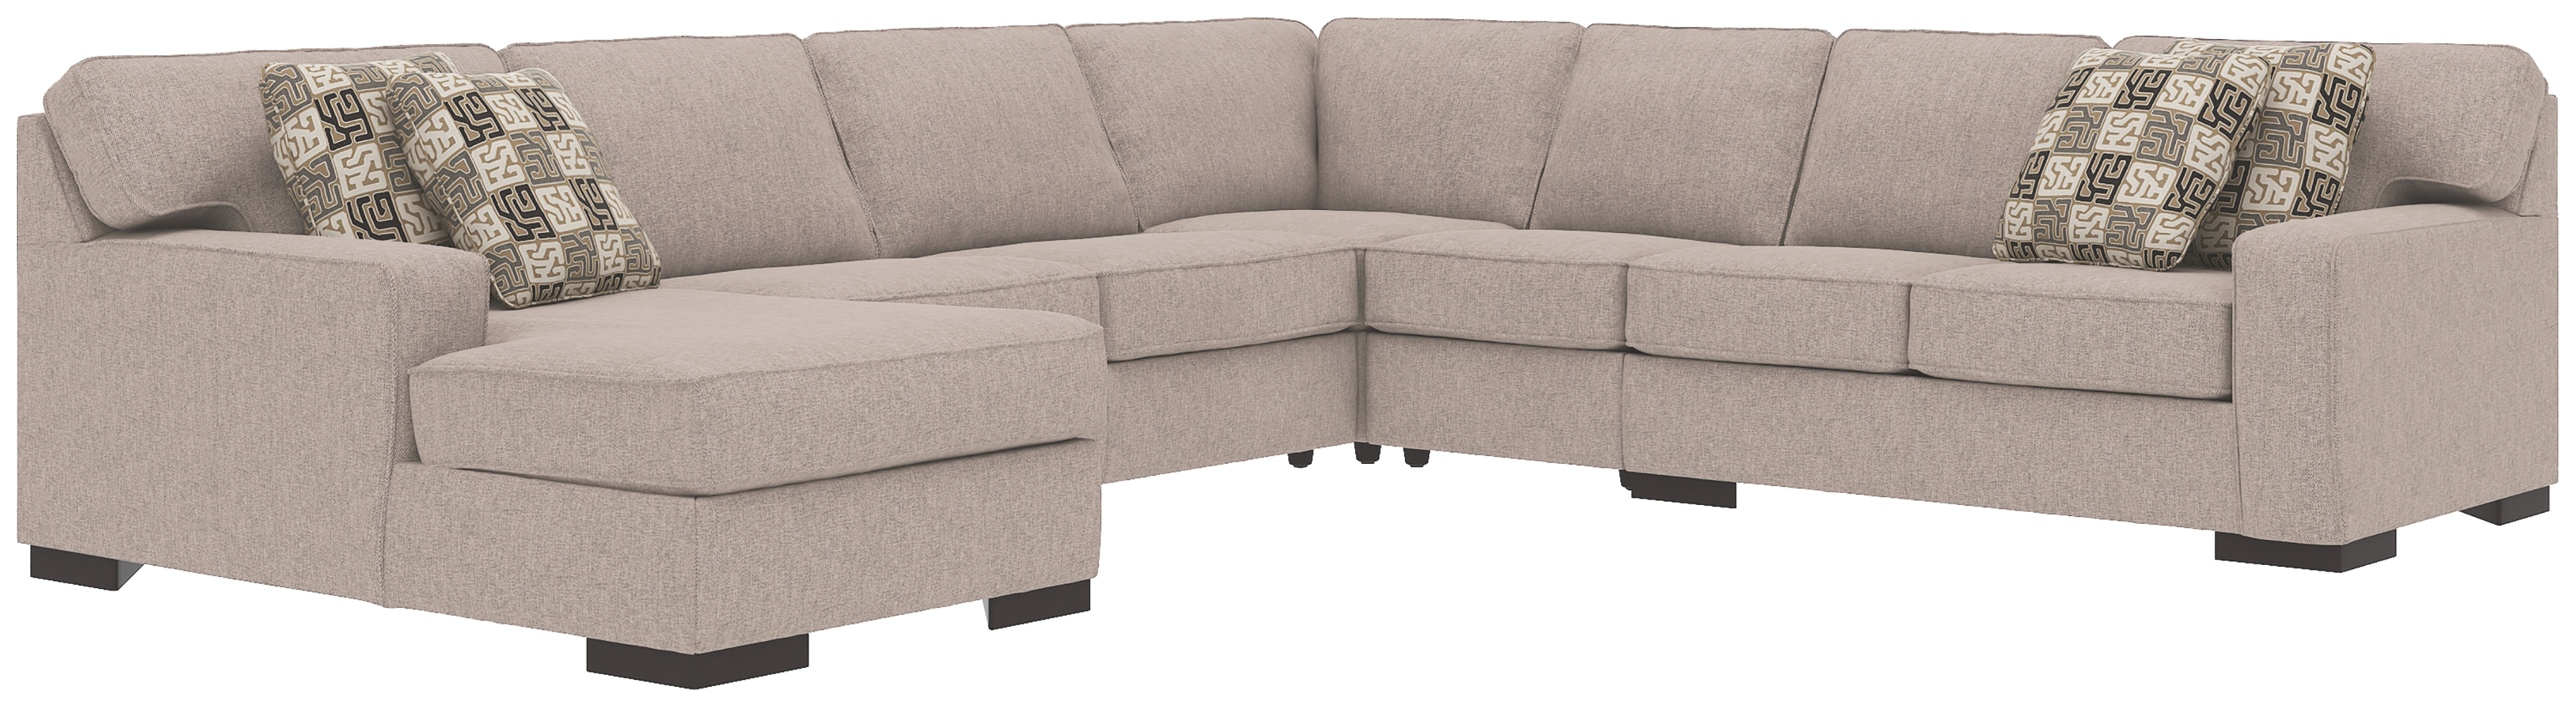 Strange Ashlor Nuvella 5 Piece Sleeper Sectional And Pillows Pabps2019 Chair Design Images Pabps2019Com